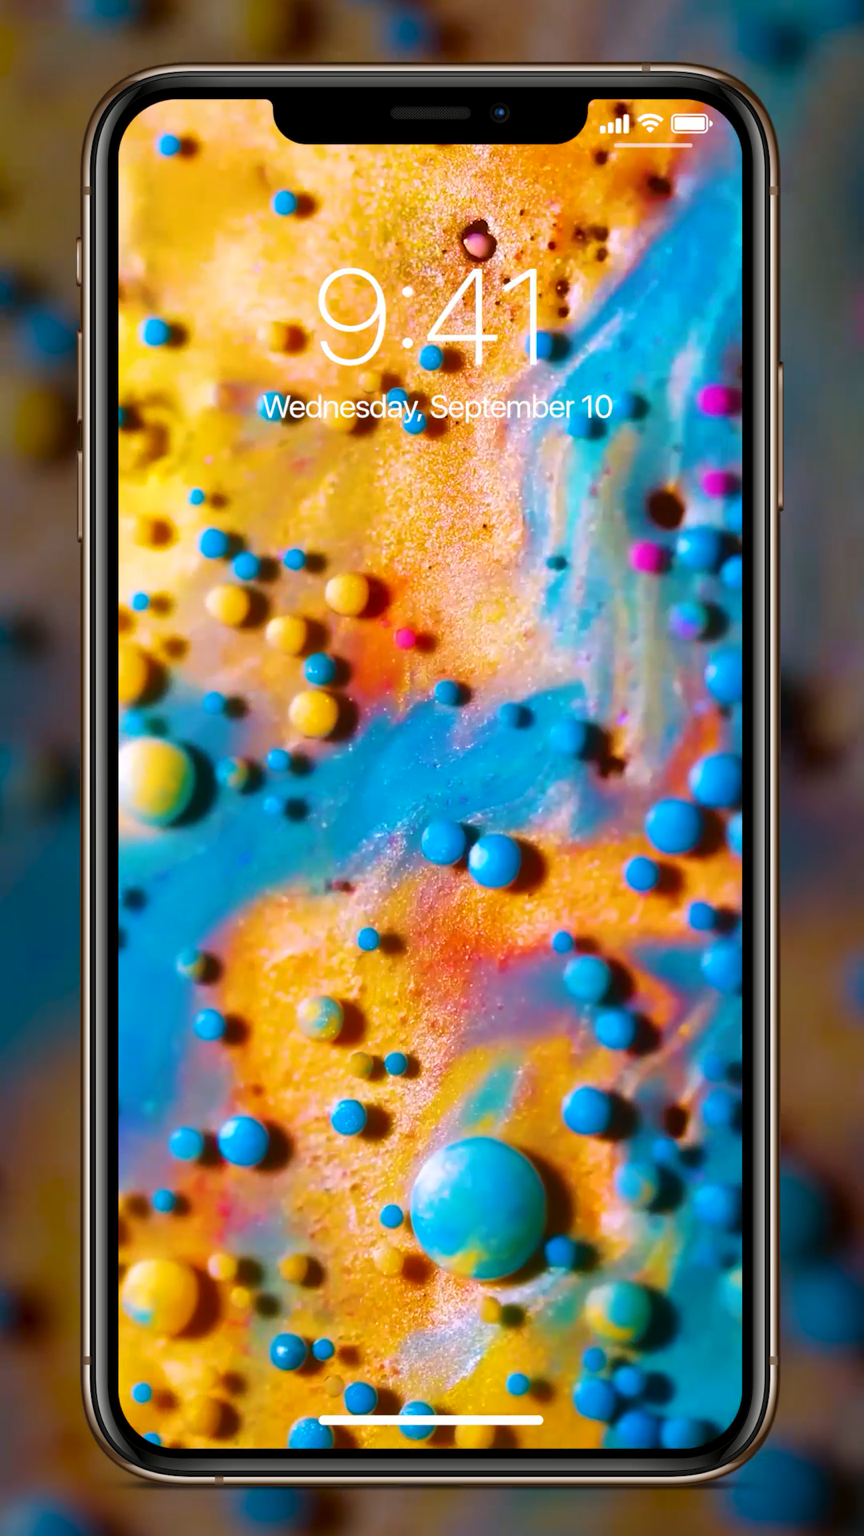 Live Wallpapers Now Video Live Wallpaper Iphone Iphone Wallpaper Video Iphone Wallpaper